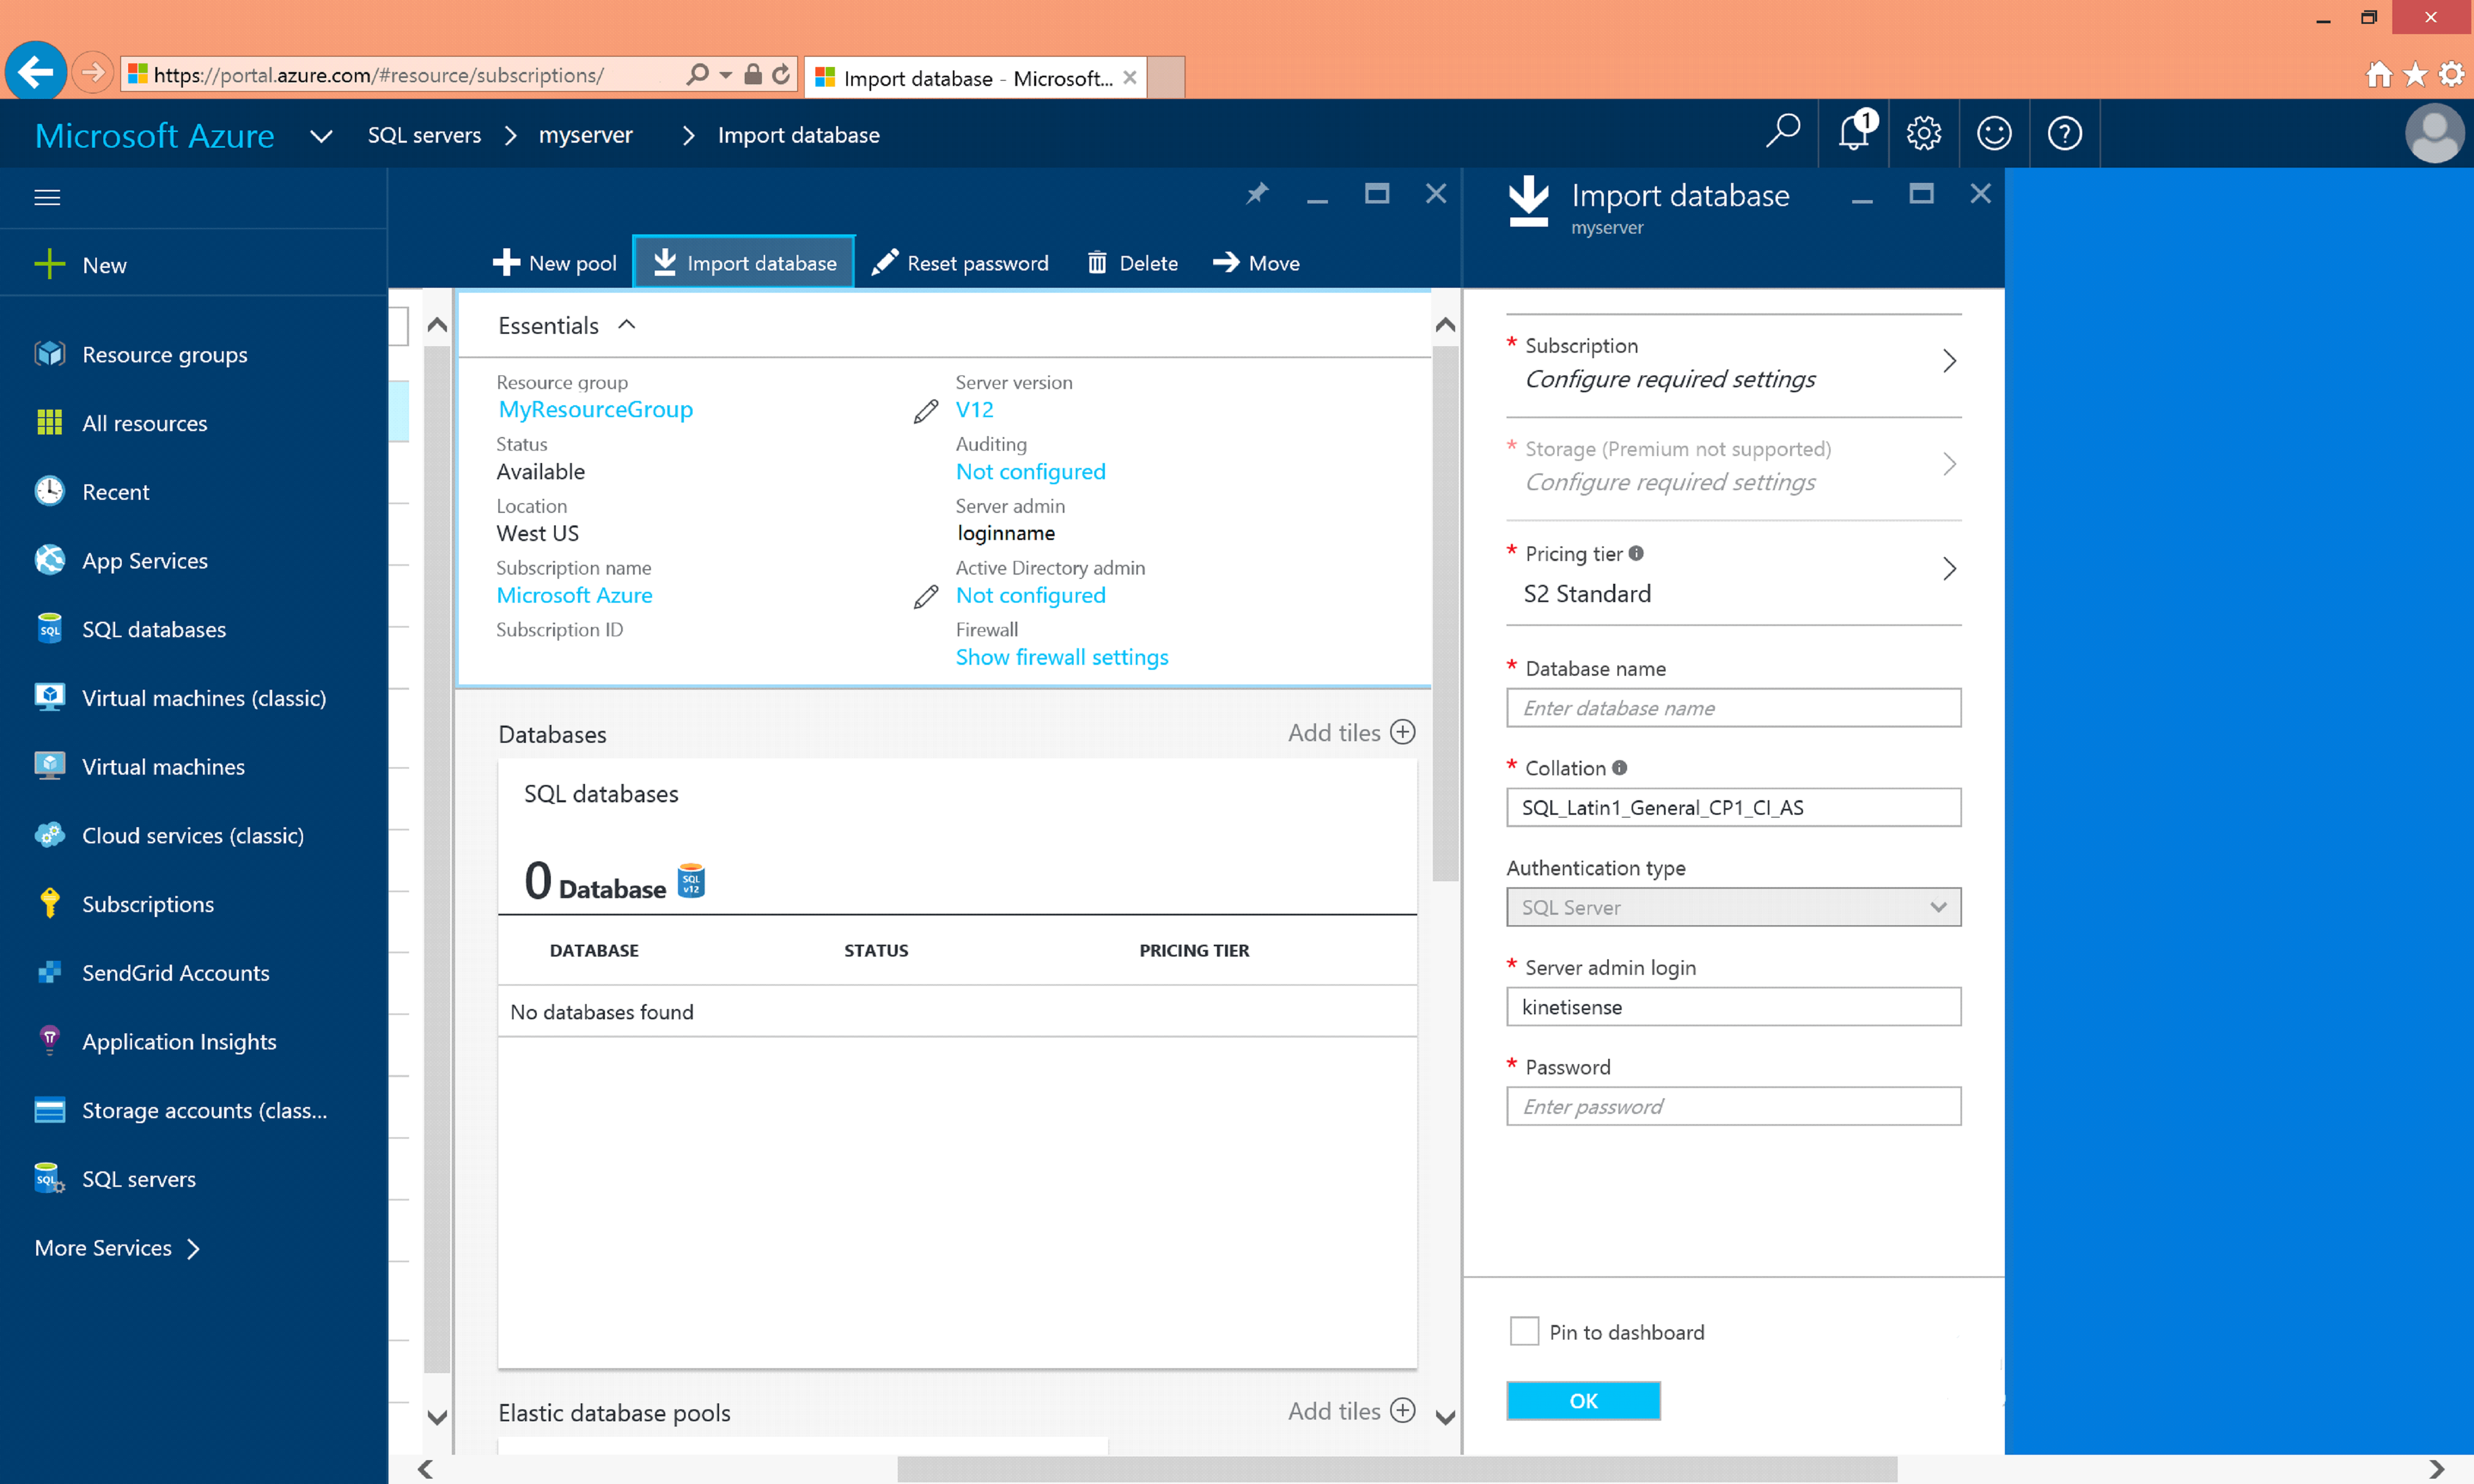 Azure Import Database